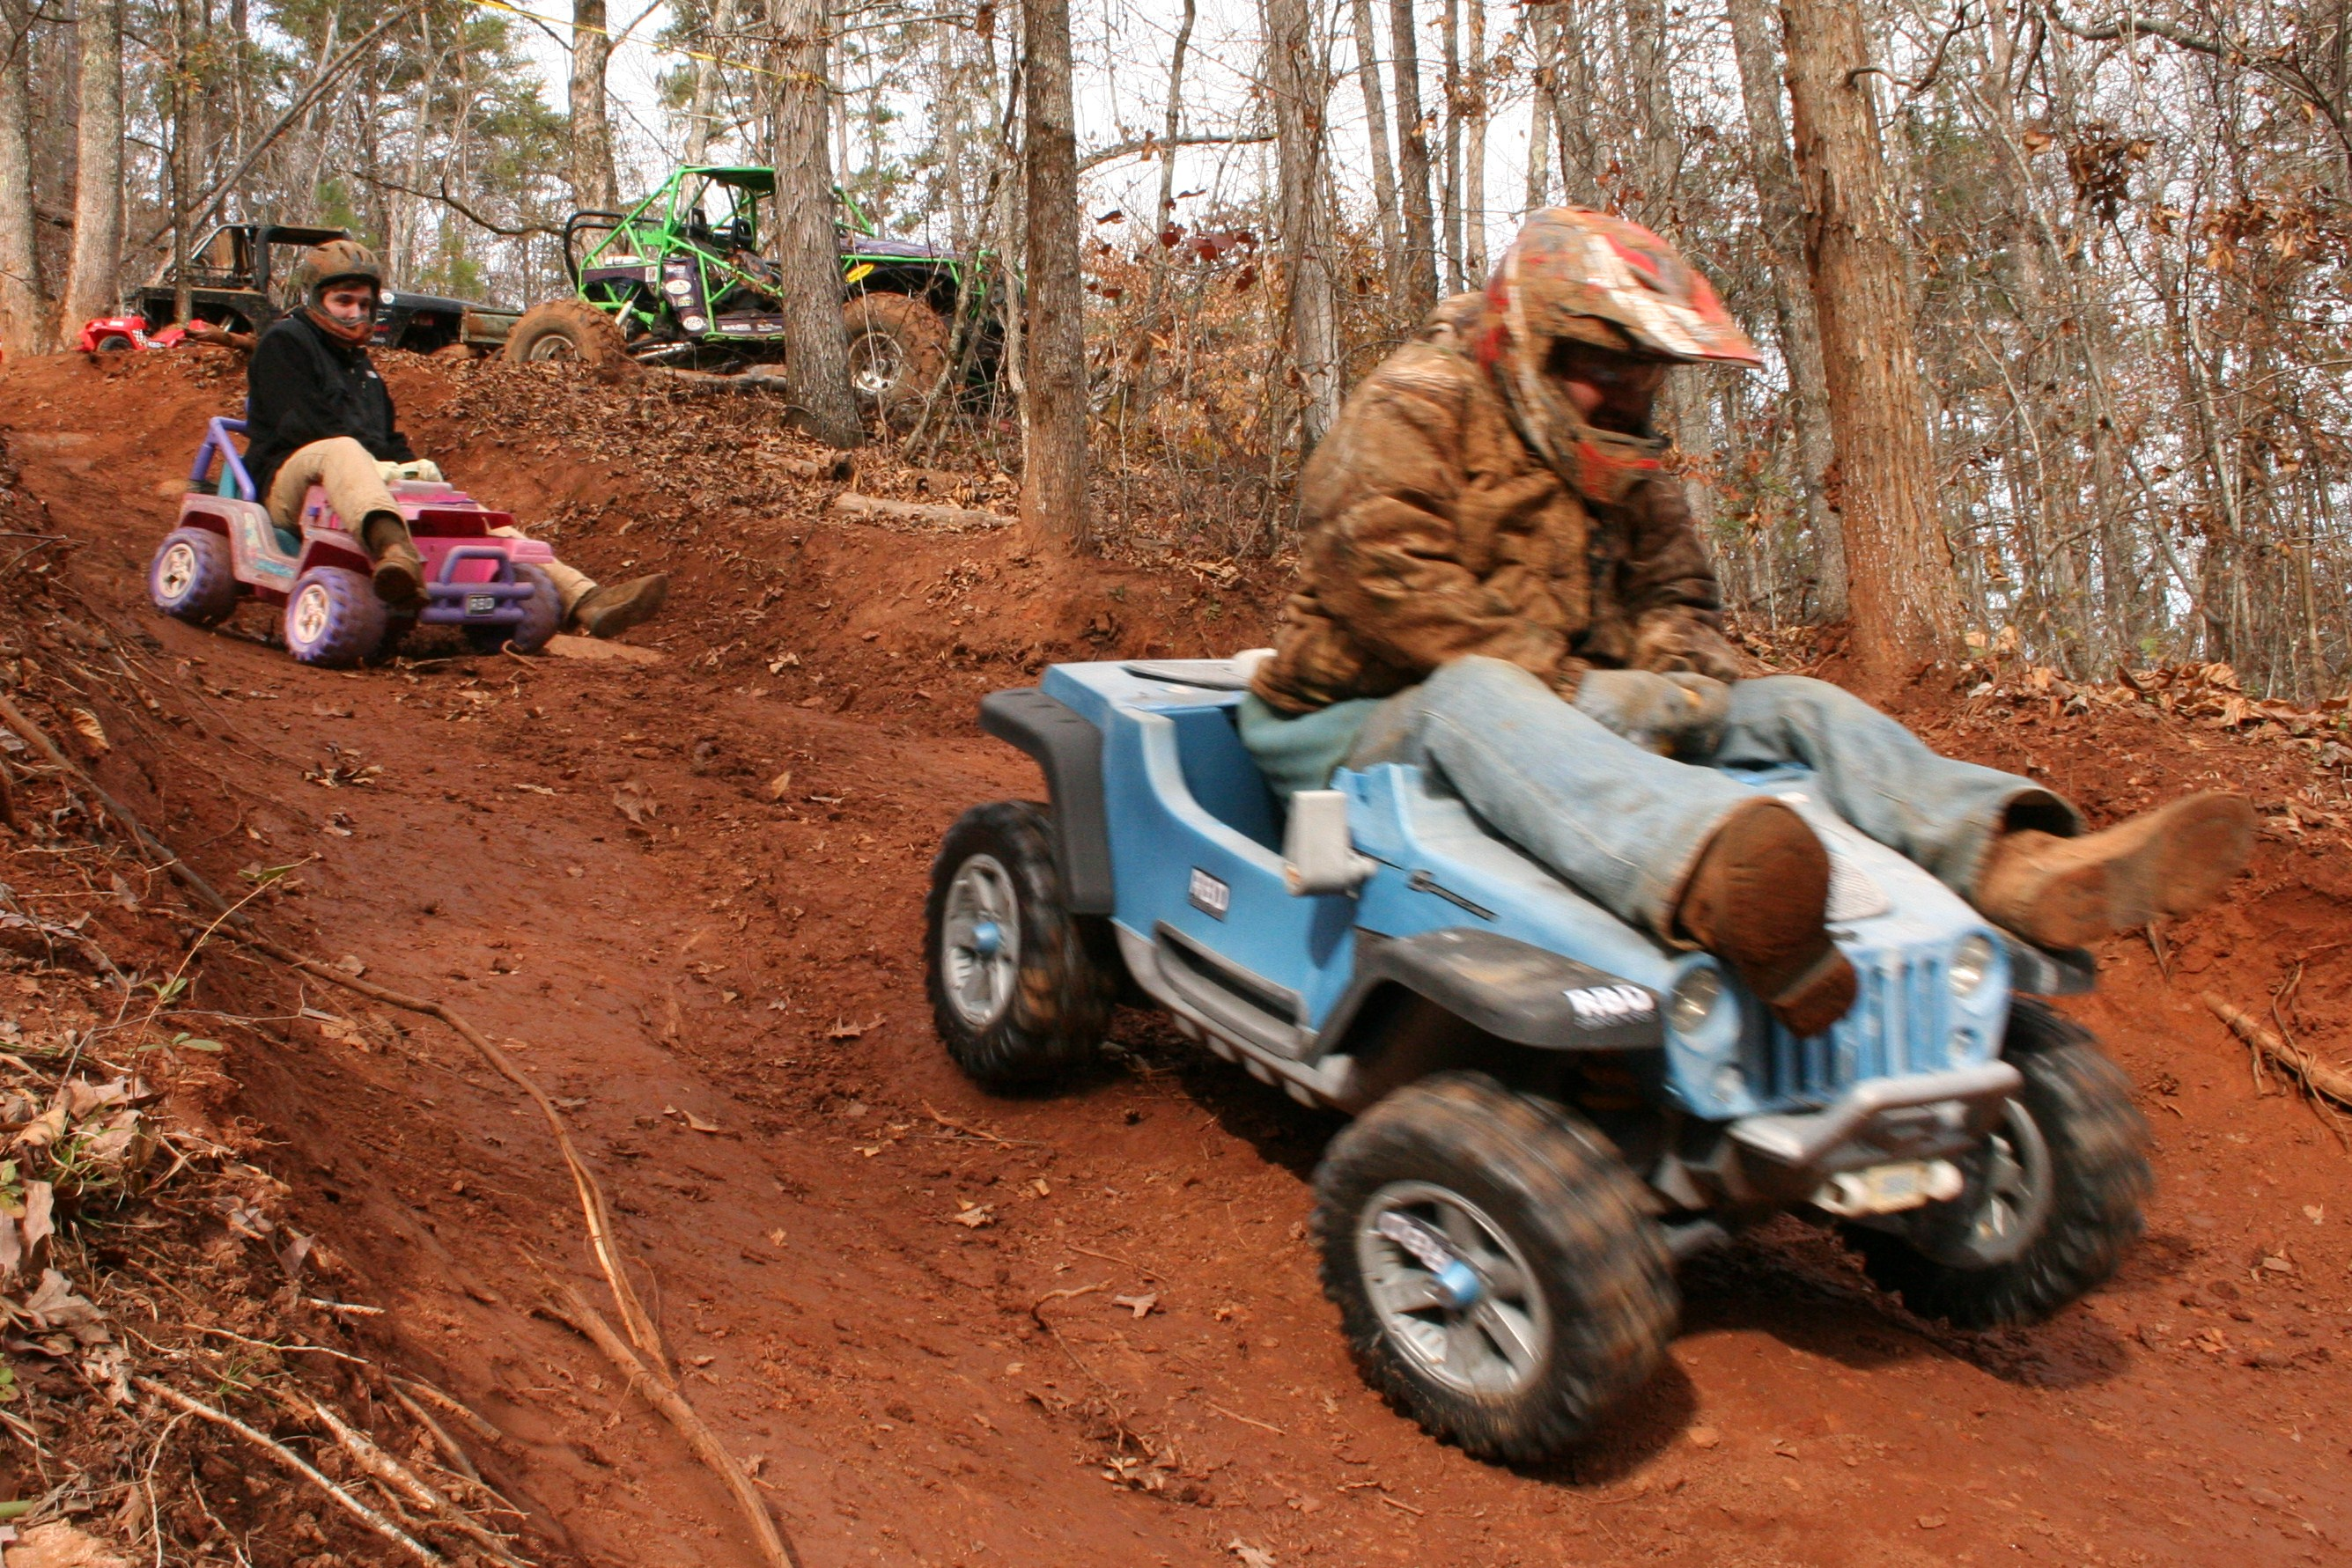 Extreme downhill barbie jeep racing #3